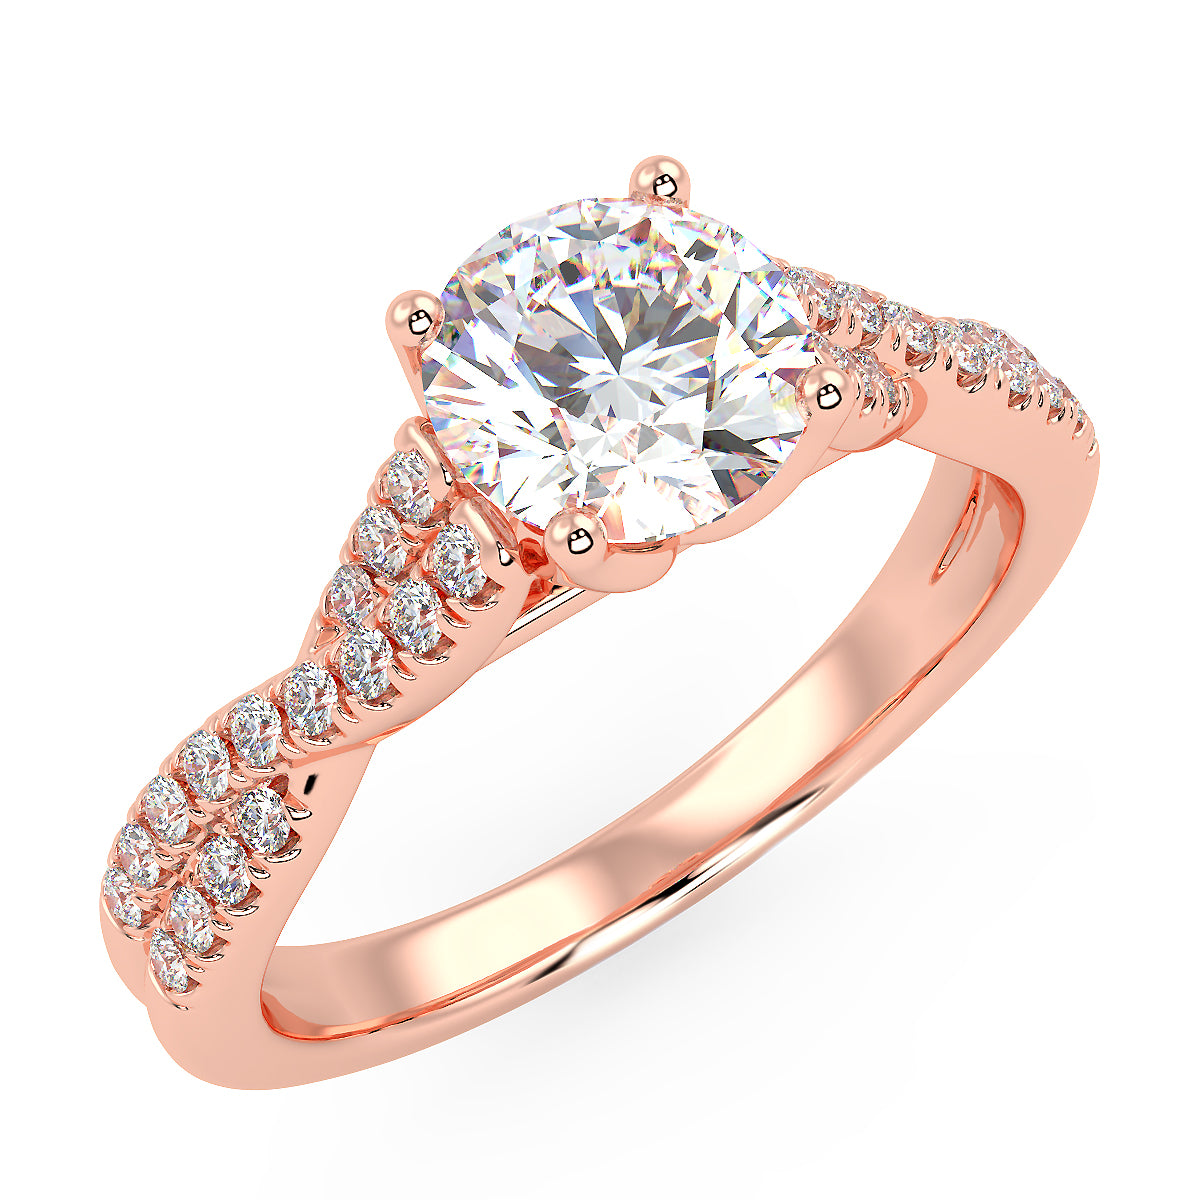 Nebula Engagement Ring in Rose Gold